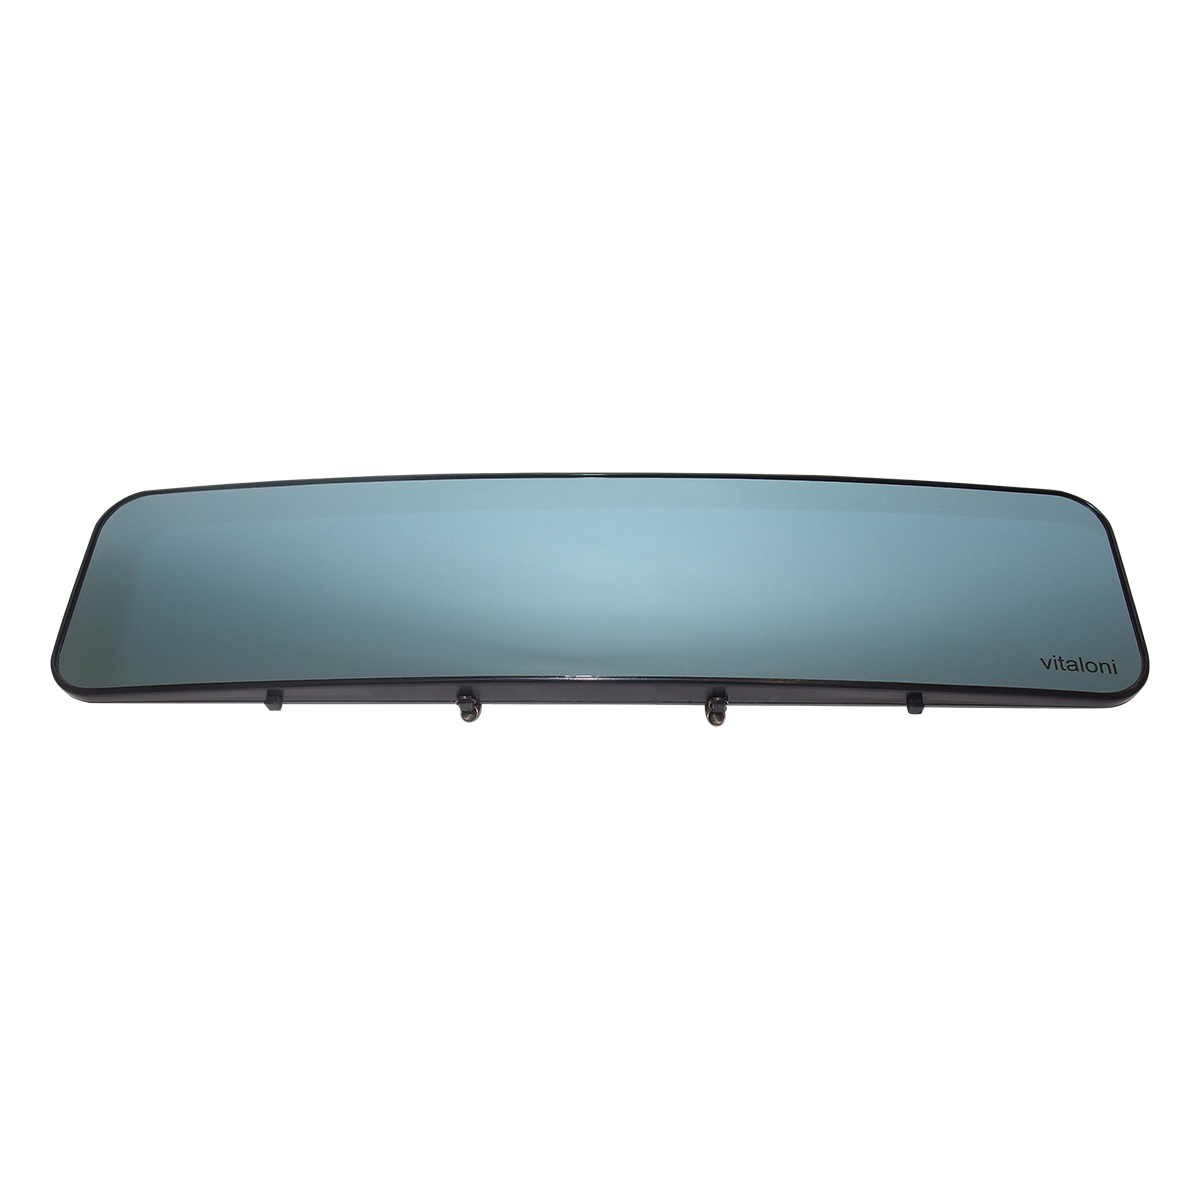 Vitaloni L-1 BLUE MIRROR